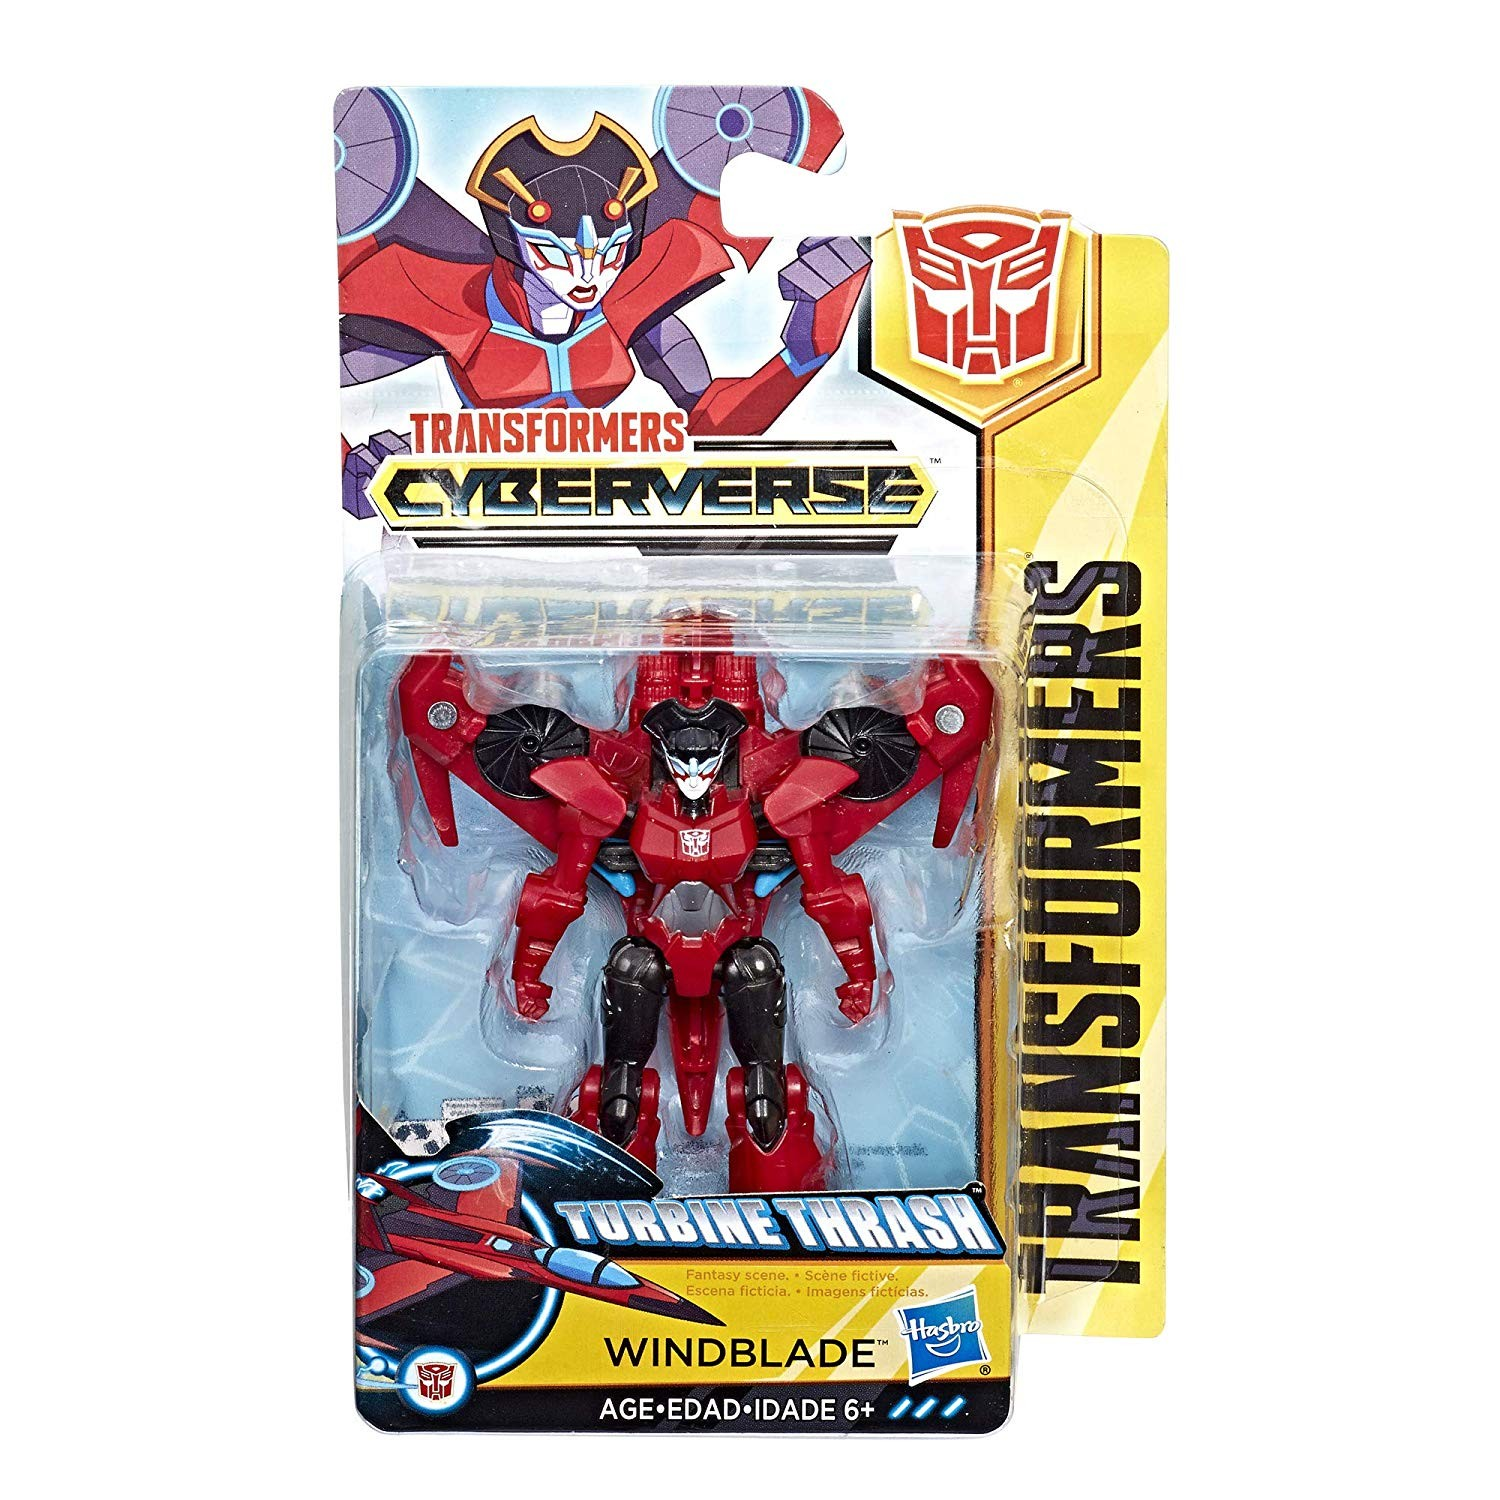 Transformers News: Cyberverse 1Step Optimus, Megatron, Starscream +stock photos of Wave2 Attackers, Ultras on Amazon